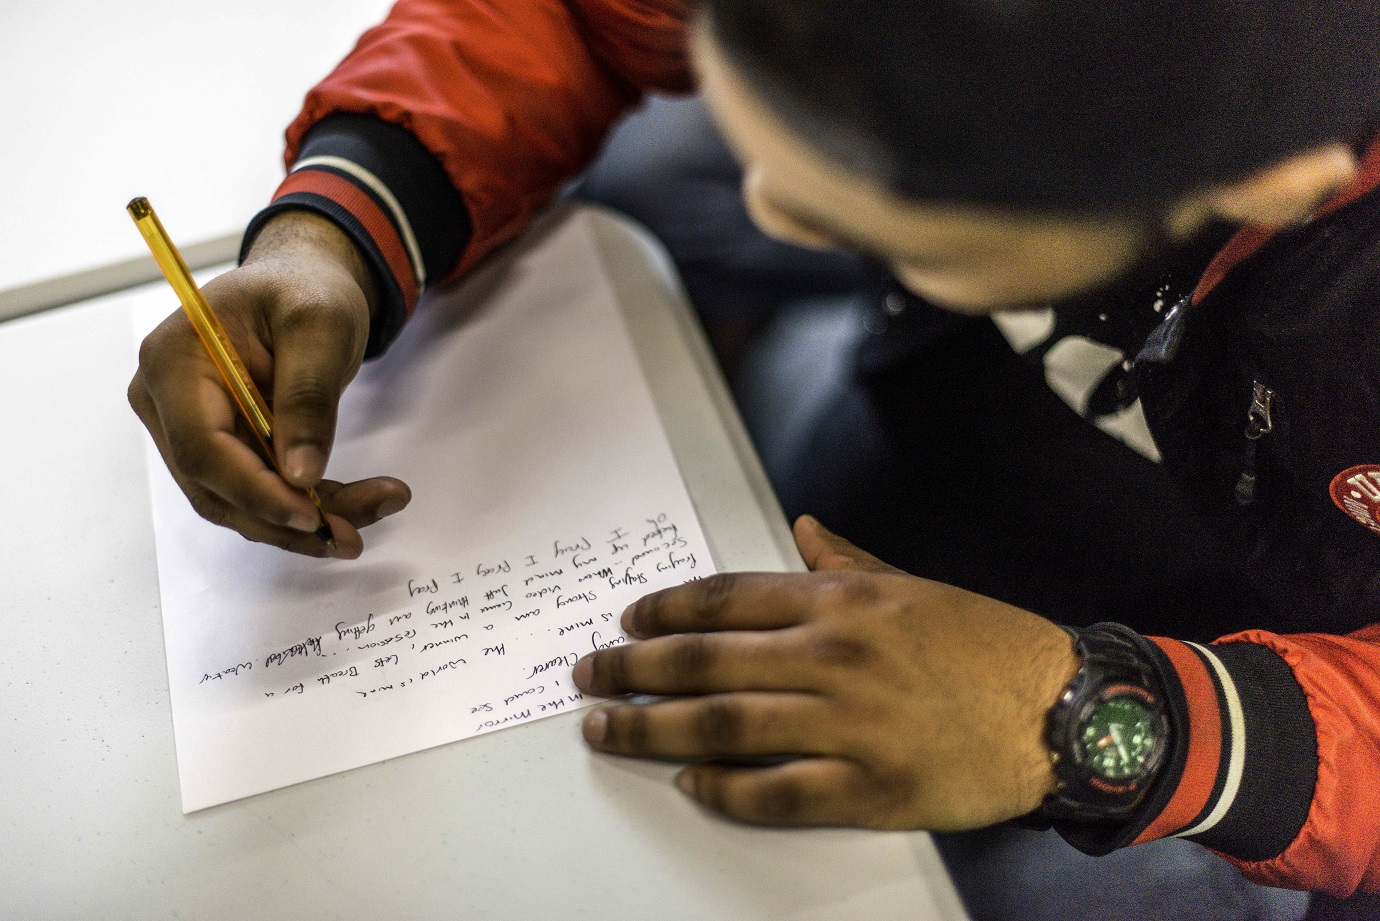 A photo of an incarcerated learner writing song lyrics